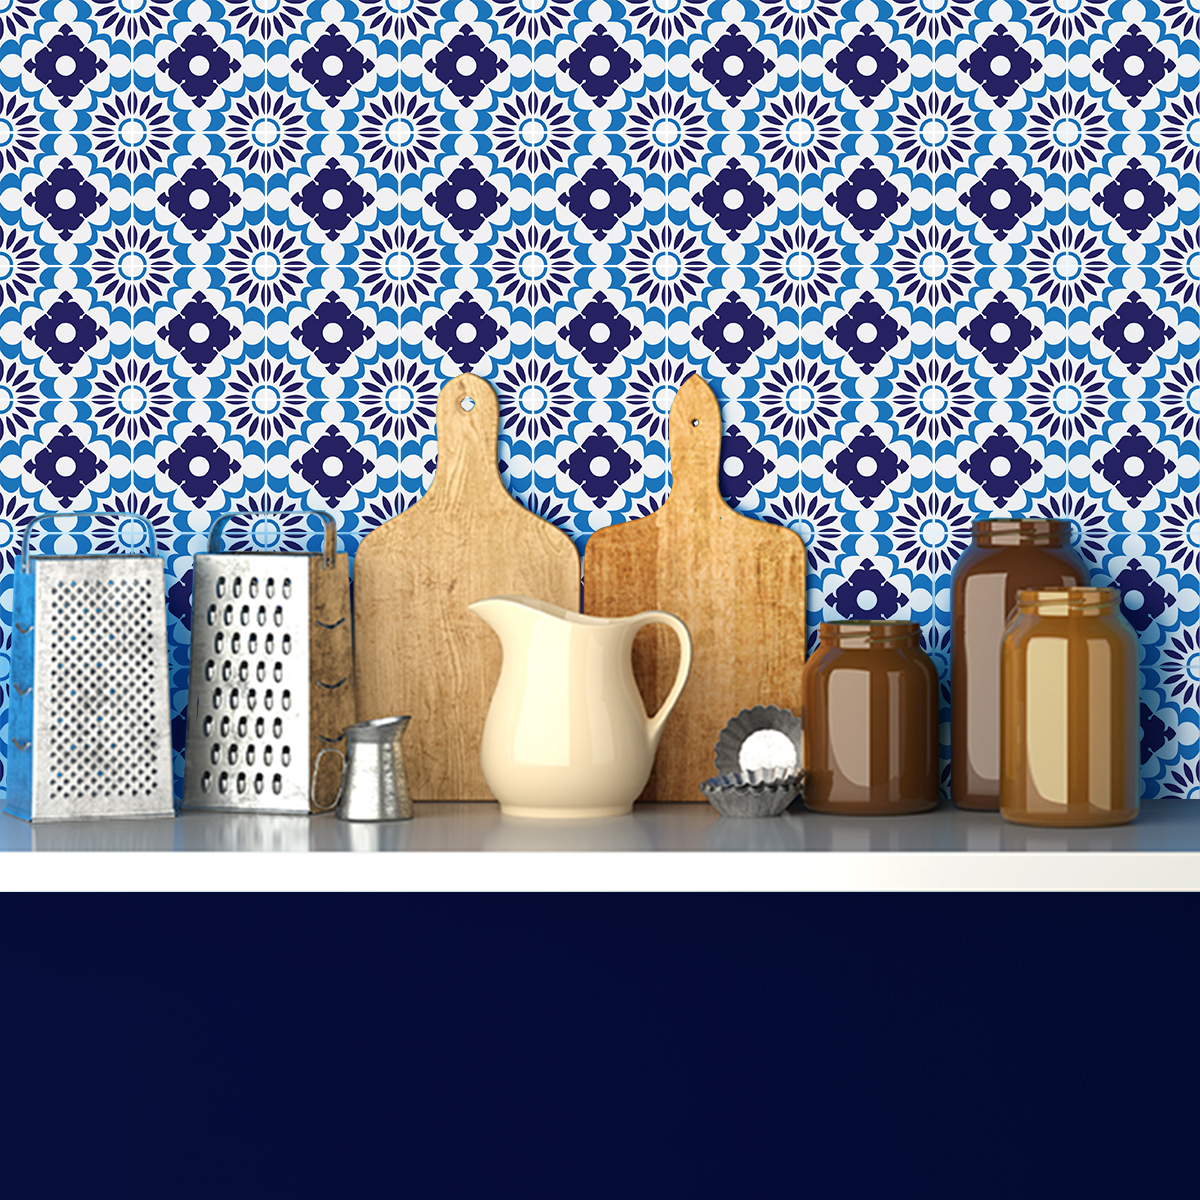 24 stickers carreaux de ciment azulejos palermo cuisine carrelages ambiance sticker. Black Bedroom Furniture Sets. Home Design Ideas